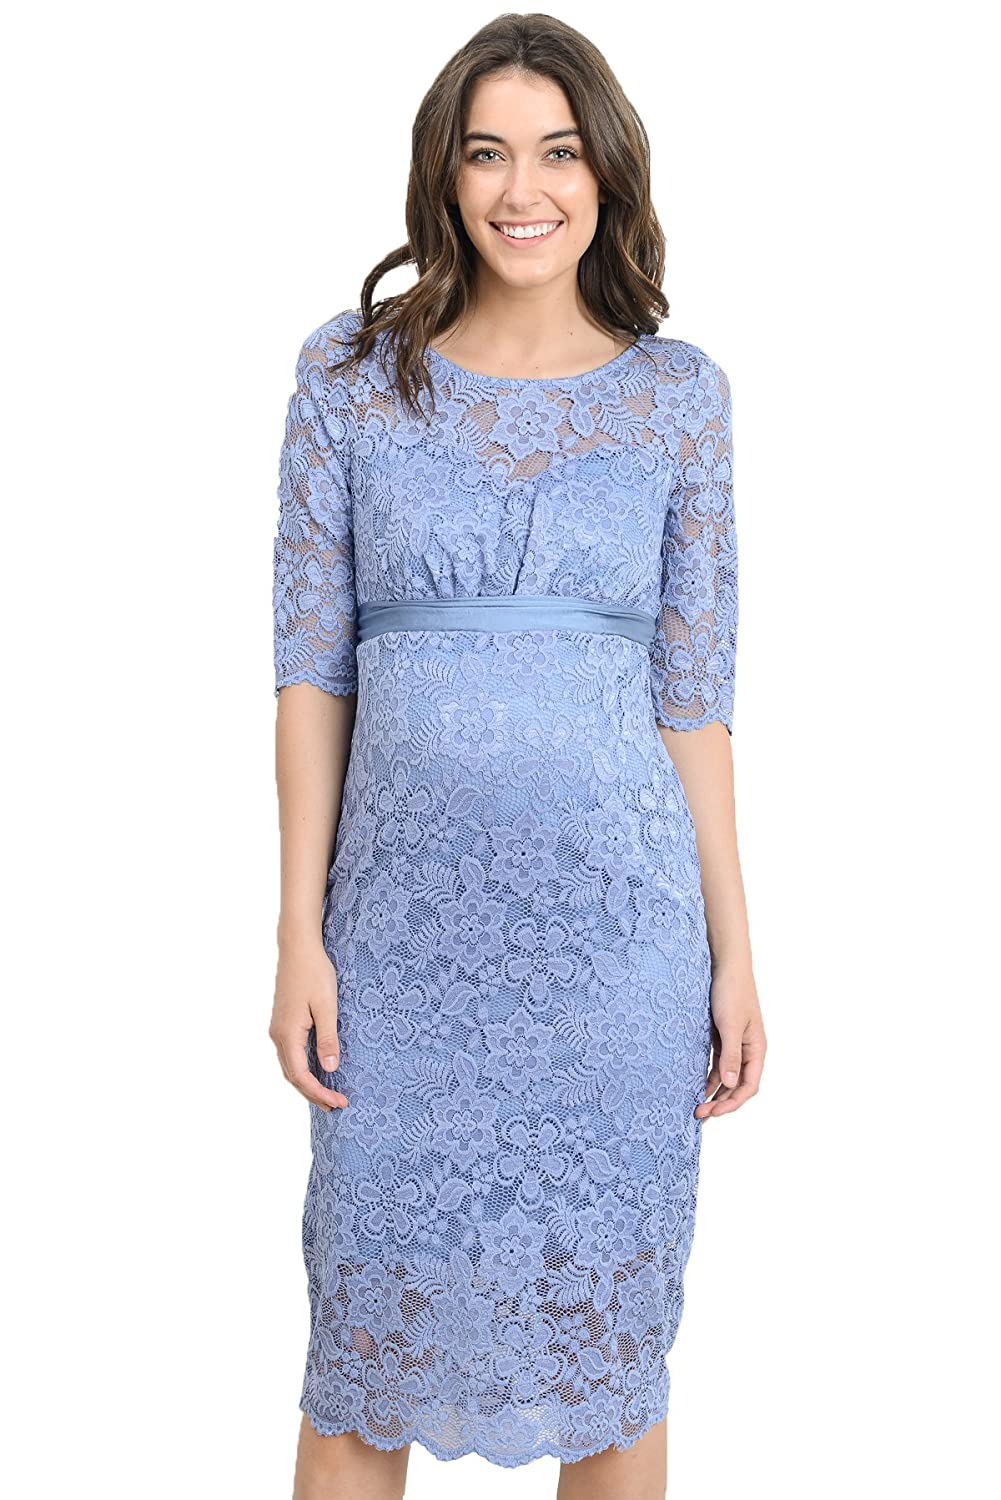 Pinkblush maternity open lace overlay bell sleeve dress at amazon hello miz womens baby shower floral lace maternity dress ombrellifo Image collections